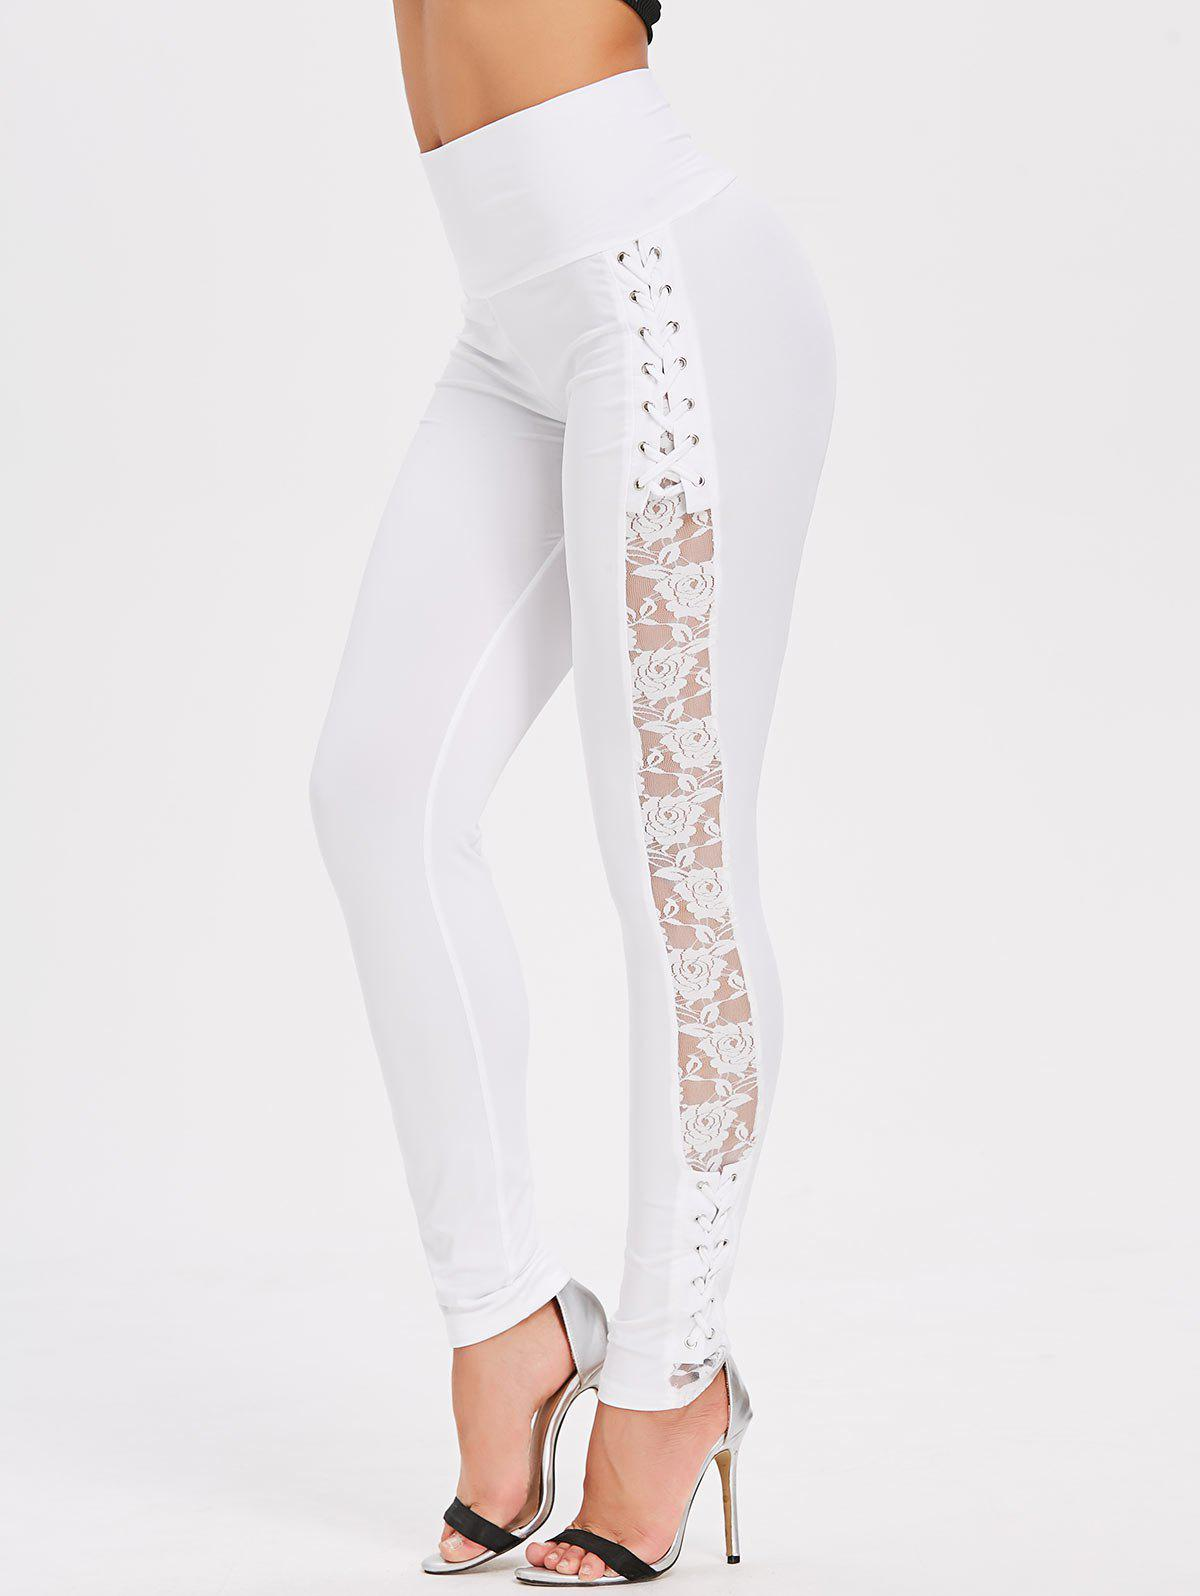 Discount Criss Cross Sheer Lace Panel Skinny Pants